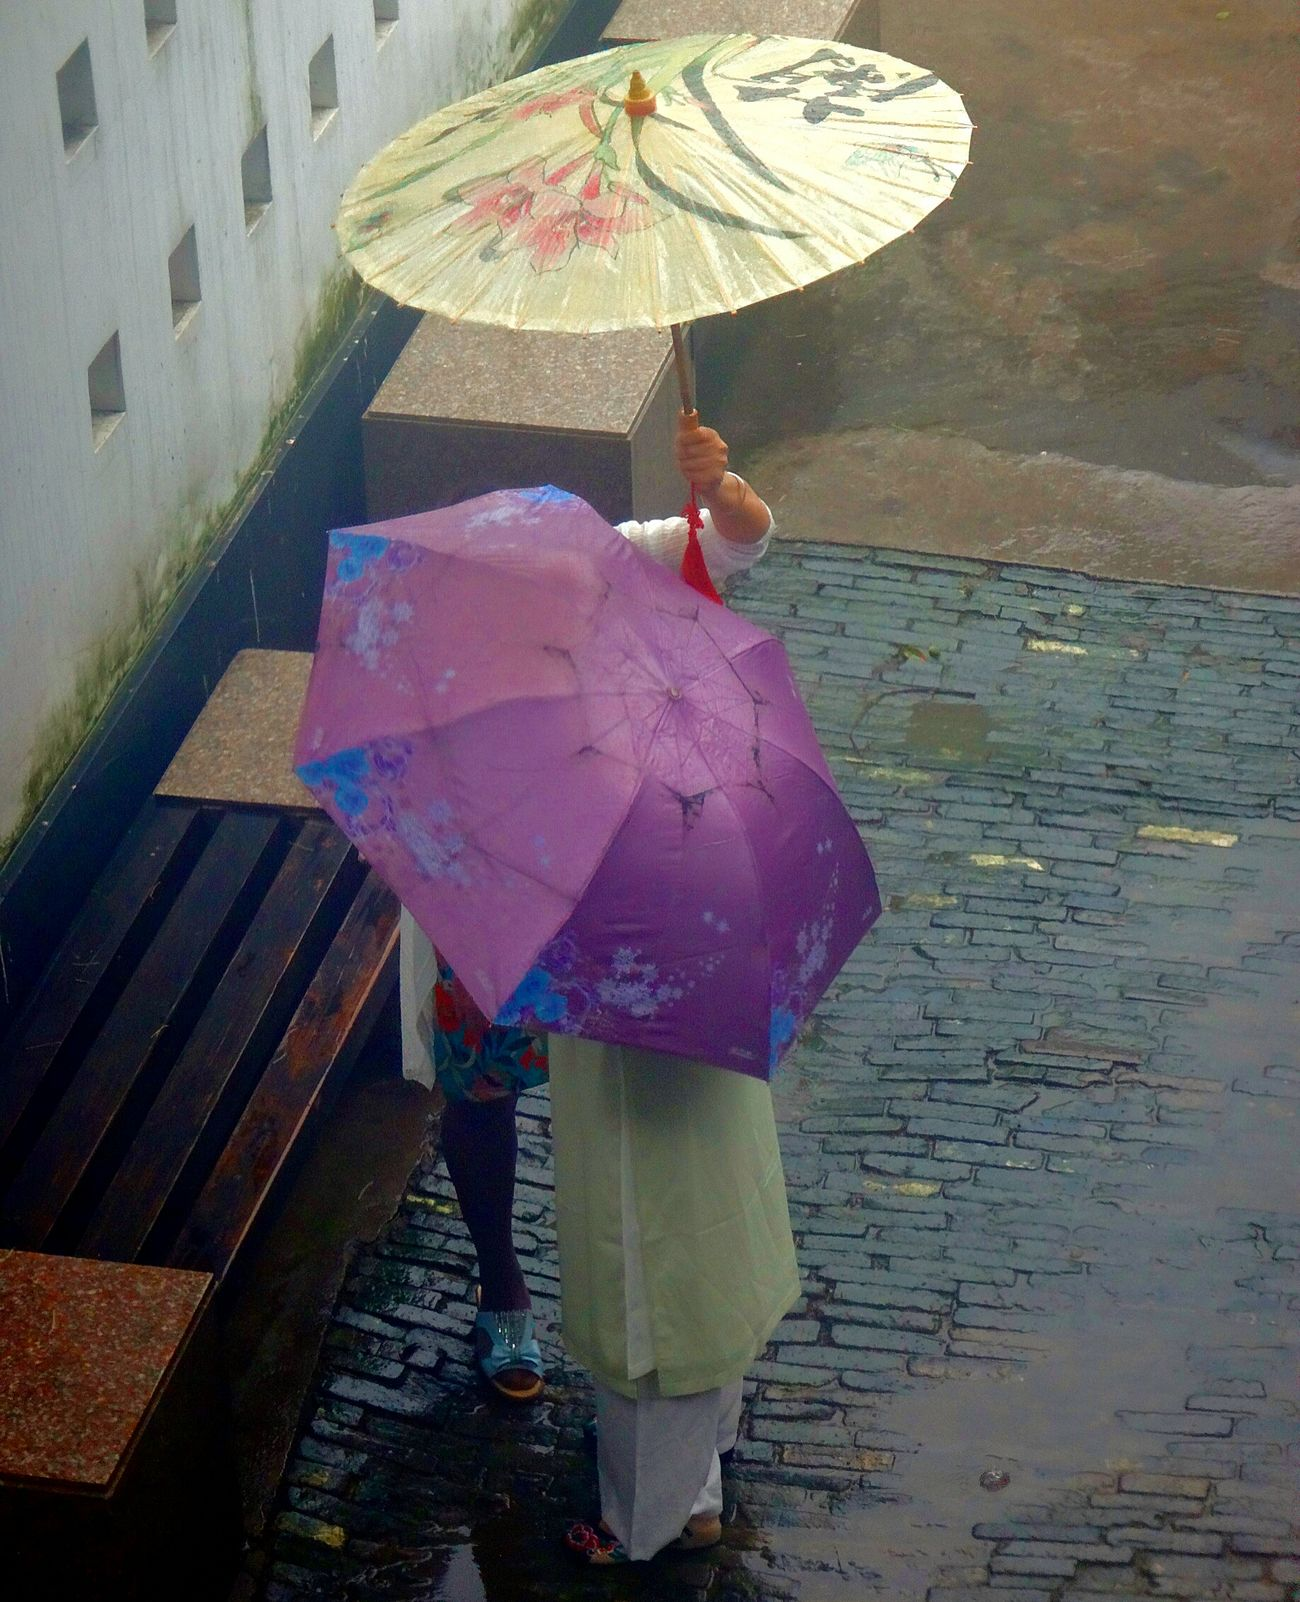 Rain Protection Rainy Season Wet Only Women People Outdoors Water Lifestyles Women Tongli China China Photos China In My Eyes China Culture